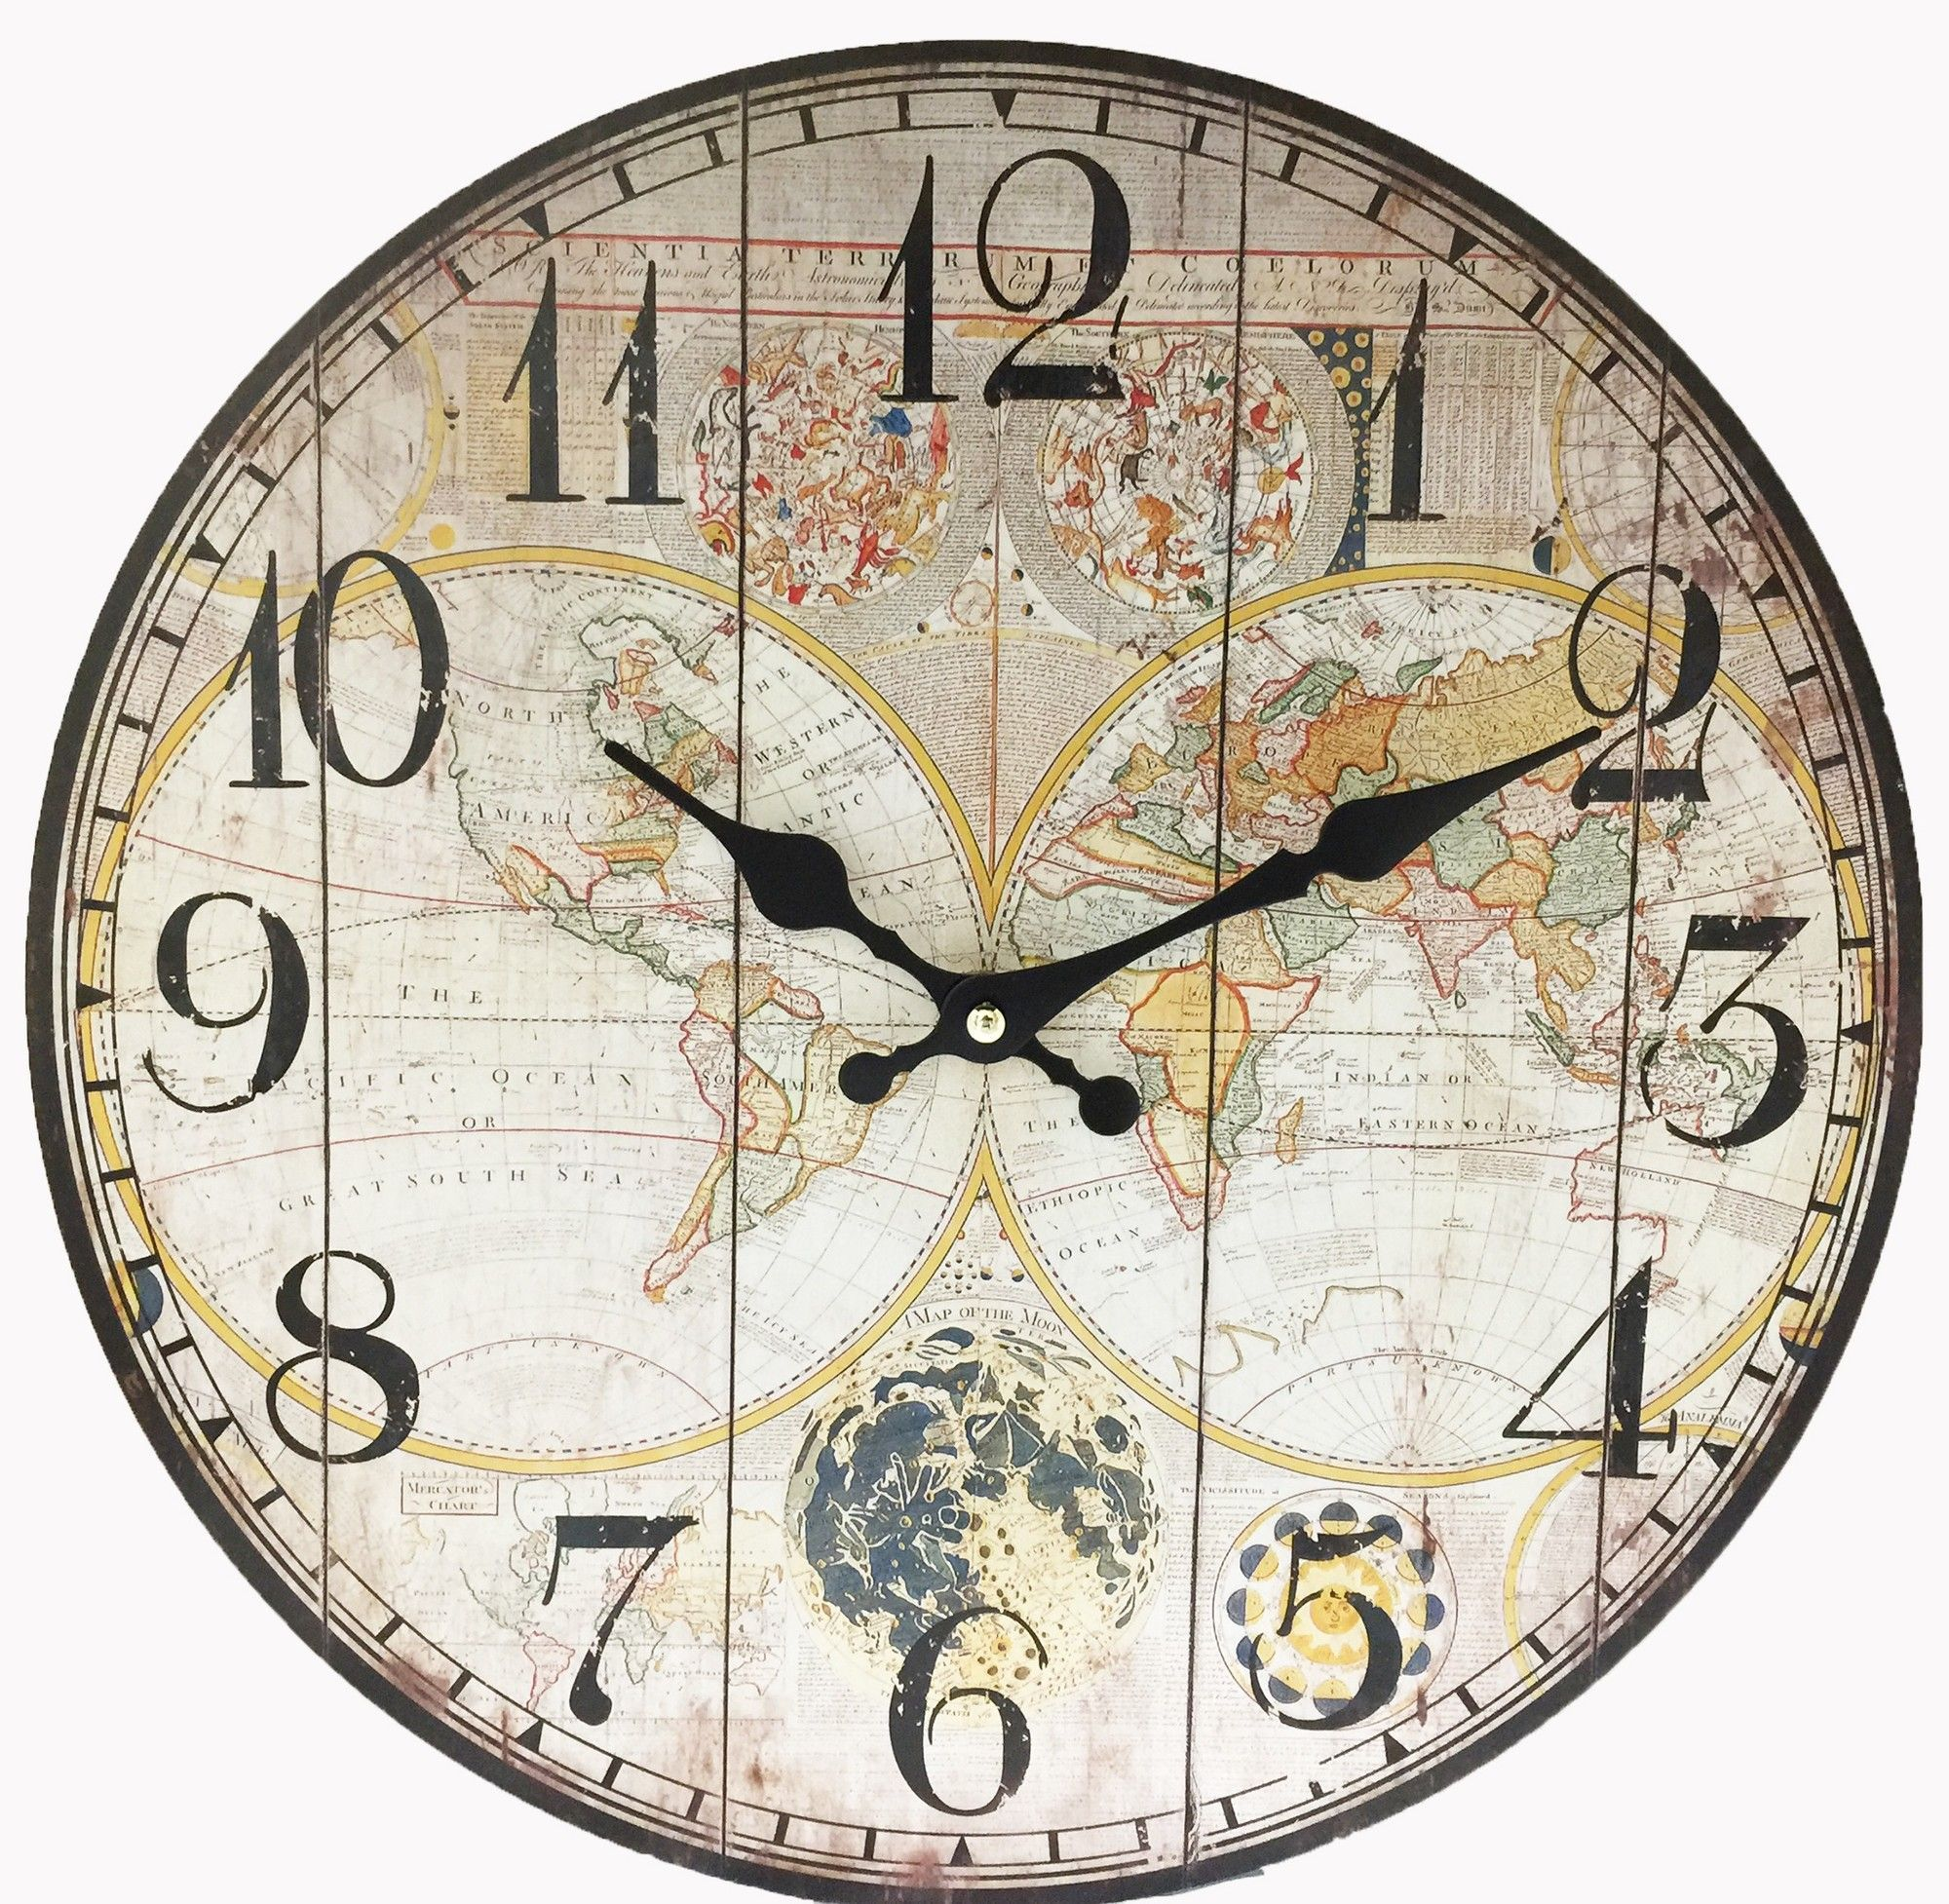 13 world map wall clock wall clocks pinterest wall clocks 13 world map wall clock gumiabroncs Image collections